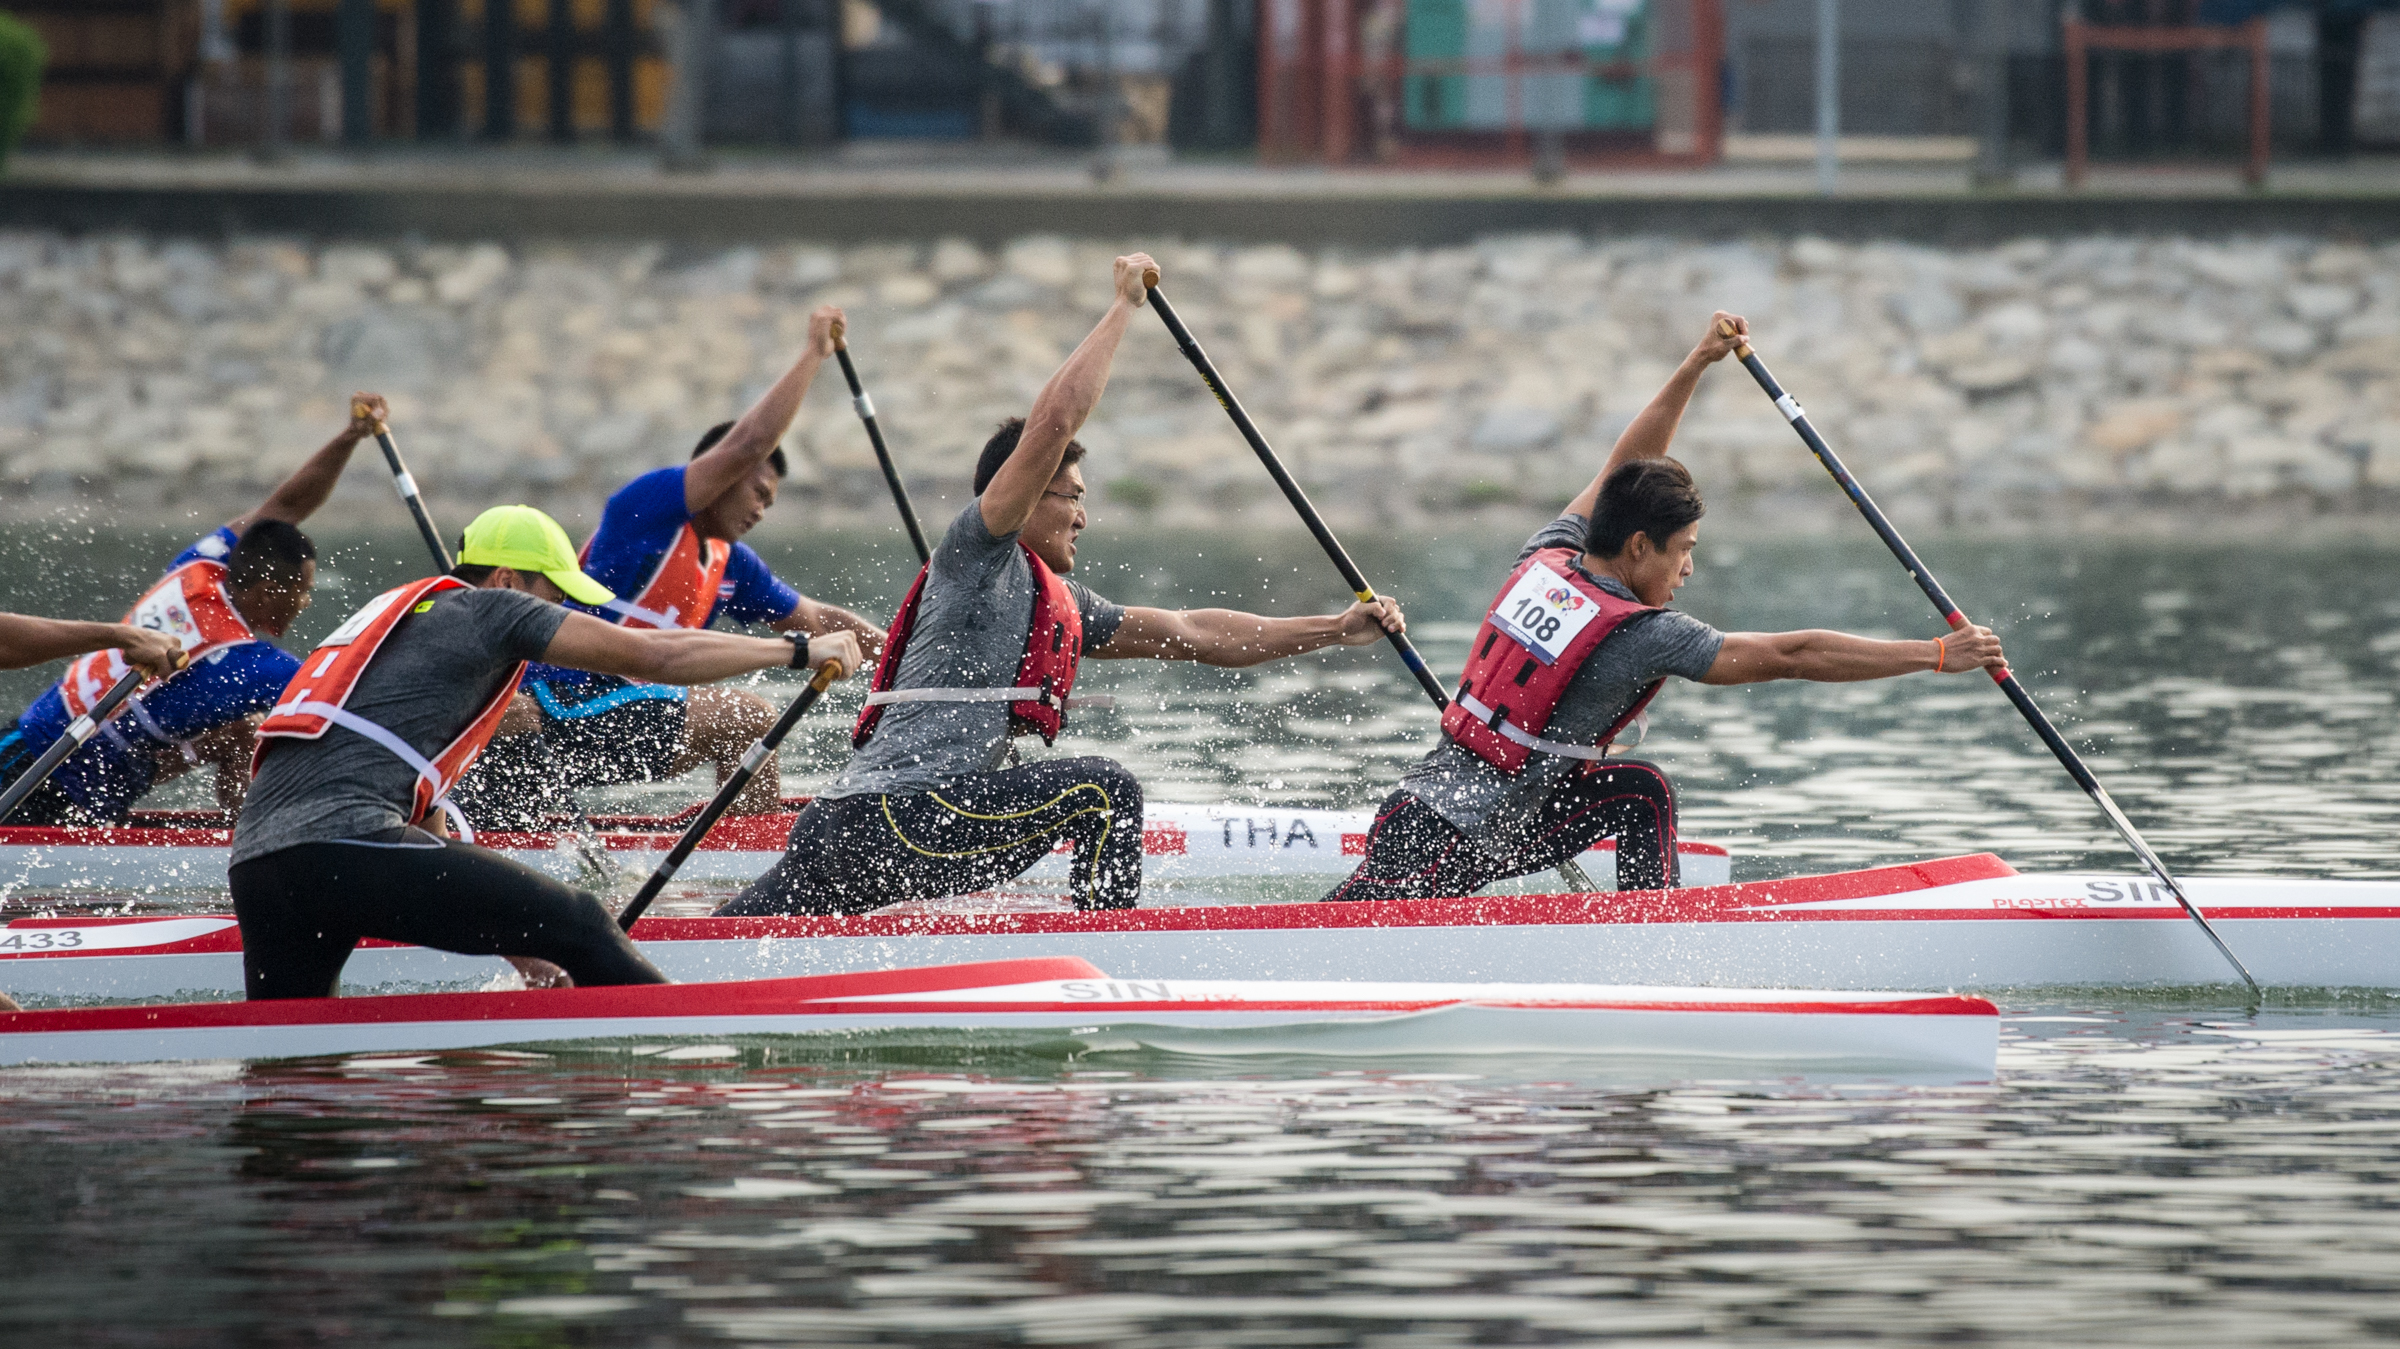 A Singaporean pair take an early lead in the Canoeing competition of the ASEAN University Games at the Marina Channel.